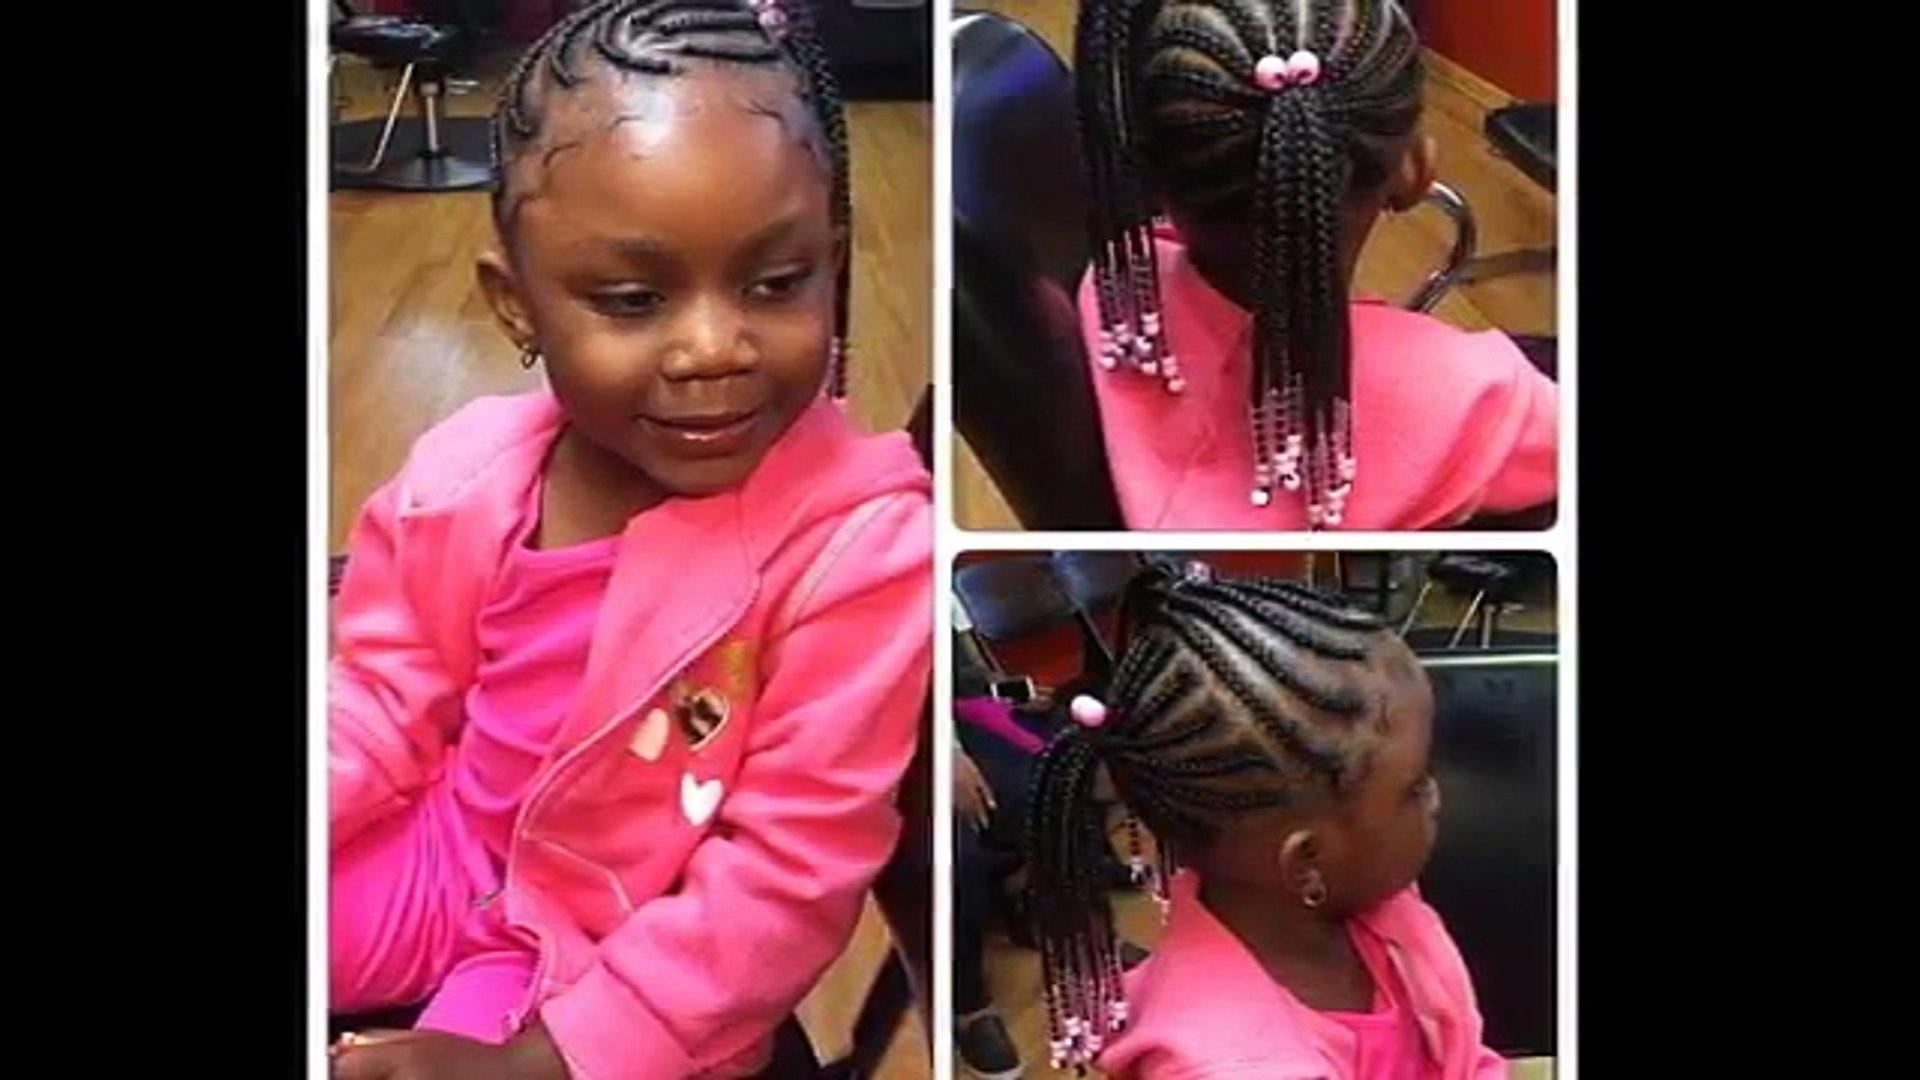 42 Crochet Hairstyles For Kids Crochet Braids And Twist Hairstyles For Black Kids Video Dailymotion